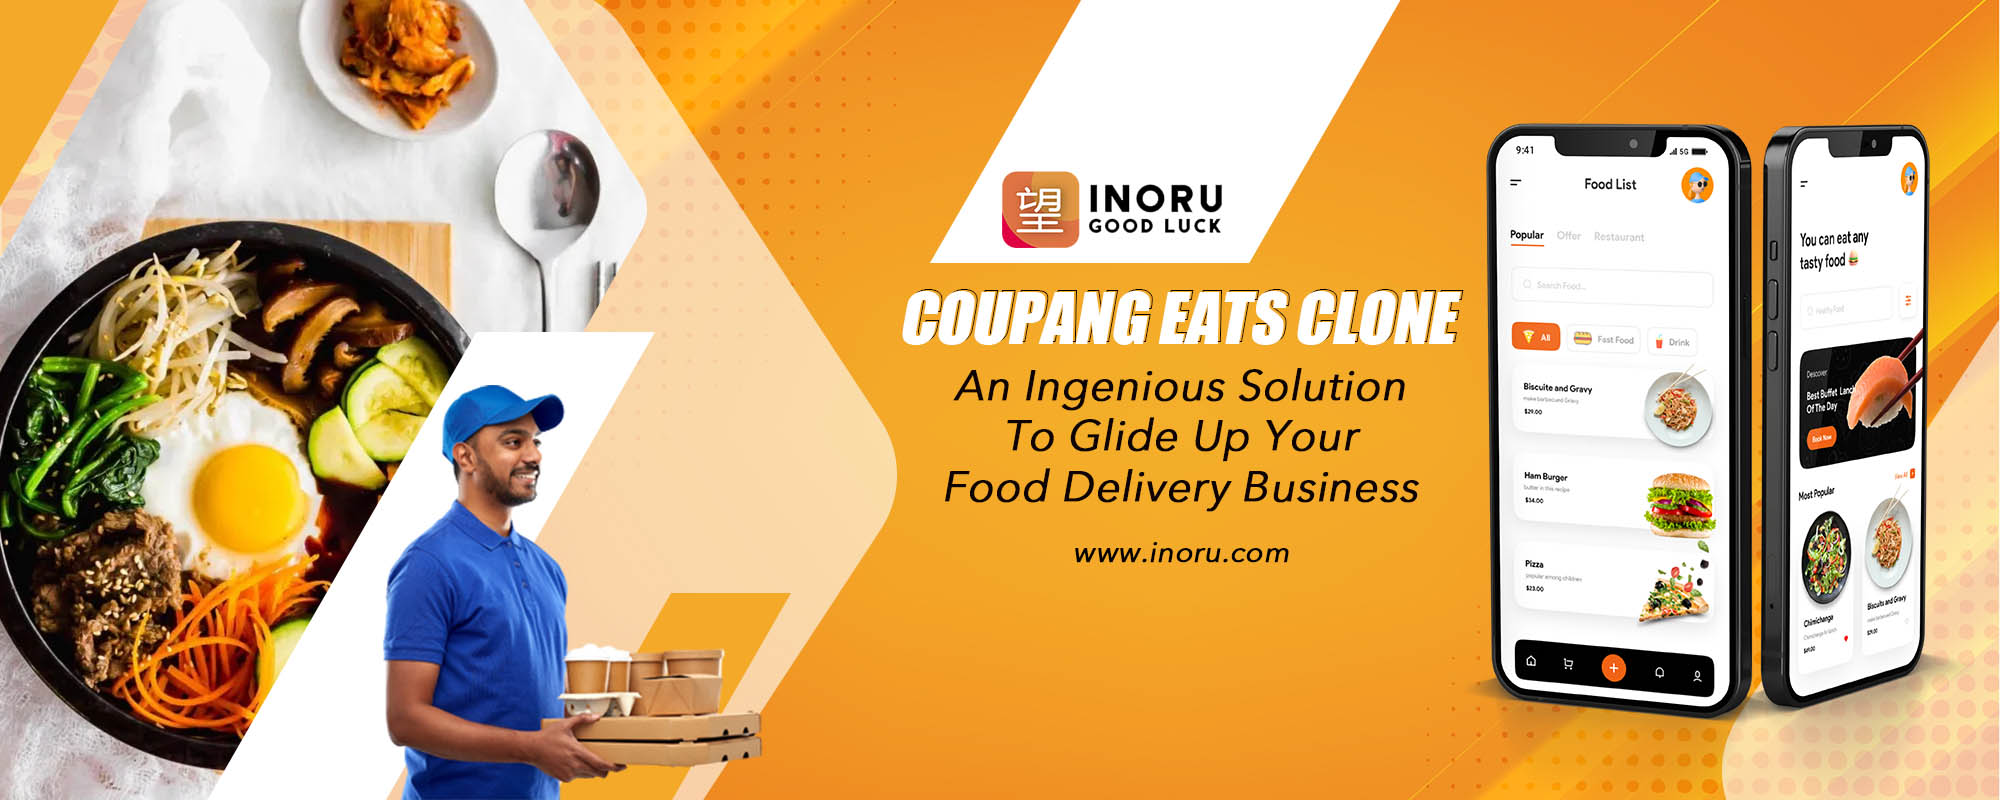 Coupang Eats Clone, Online Food Delivery, Delivery Restaurant near me, Food Delivery App, UberEats Clone